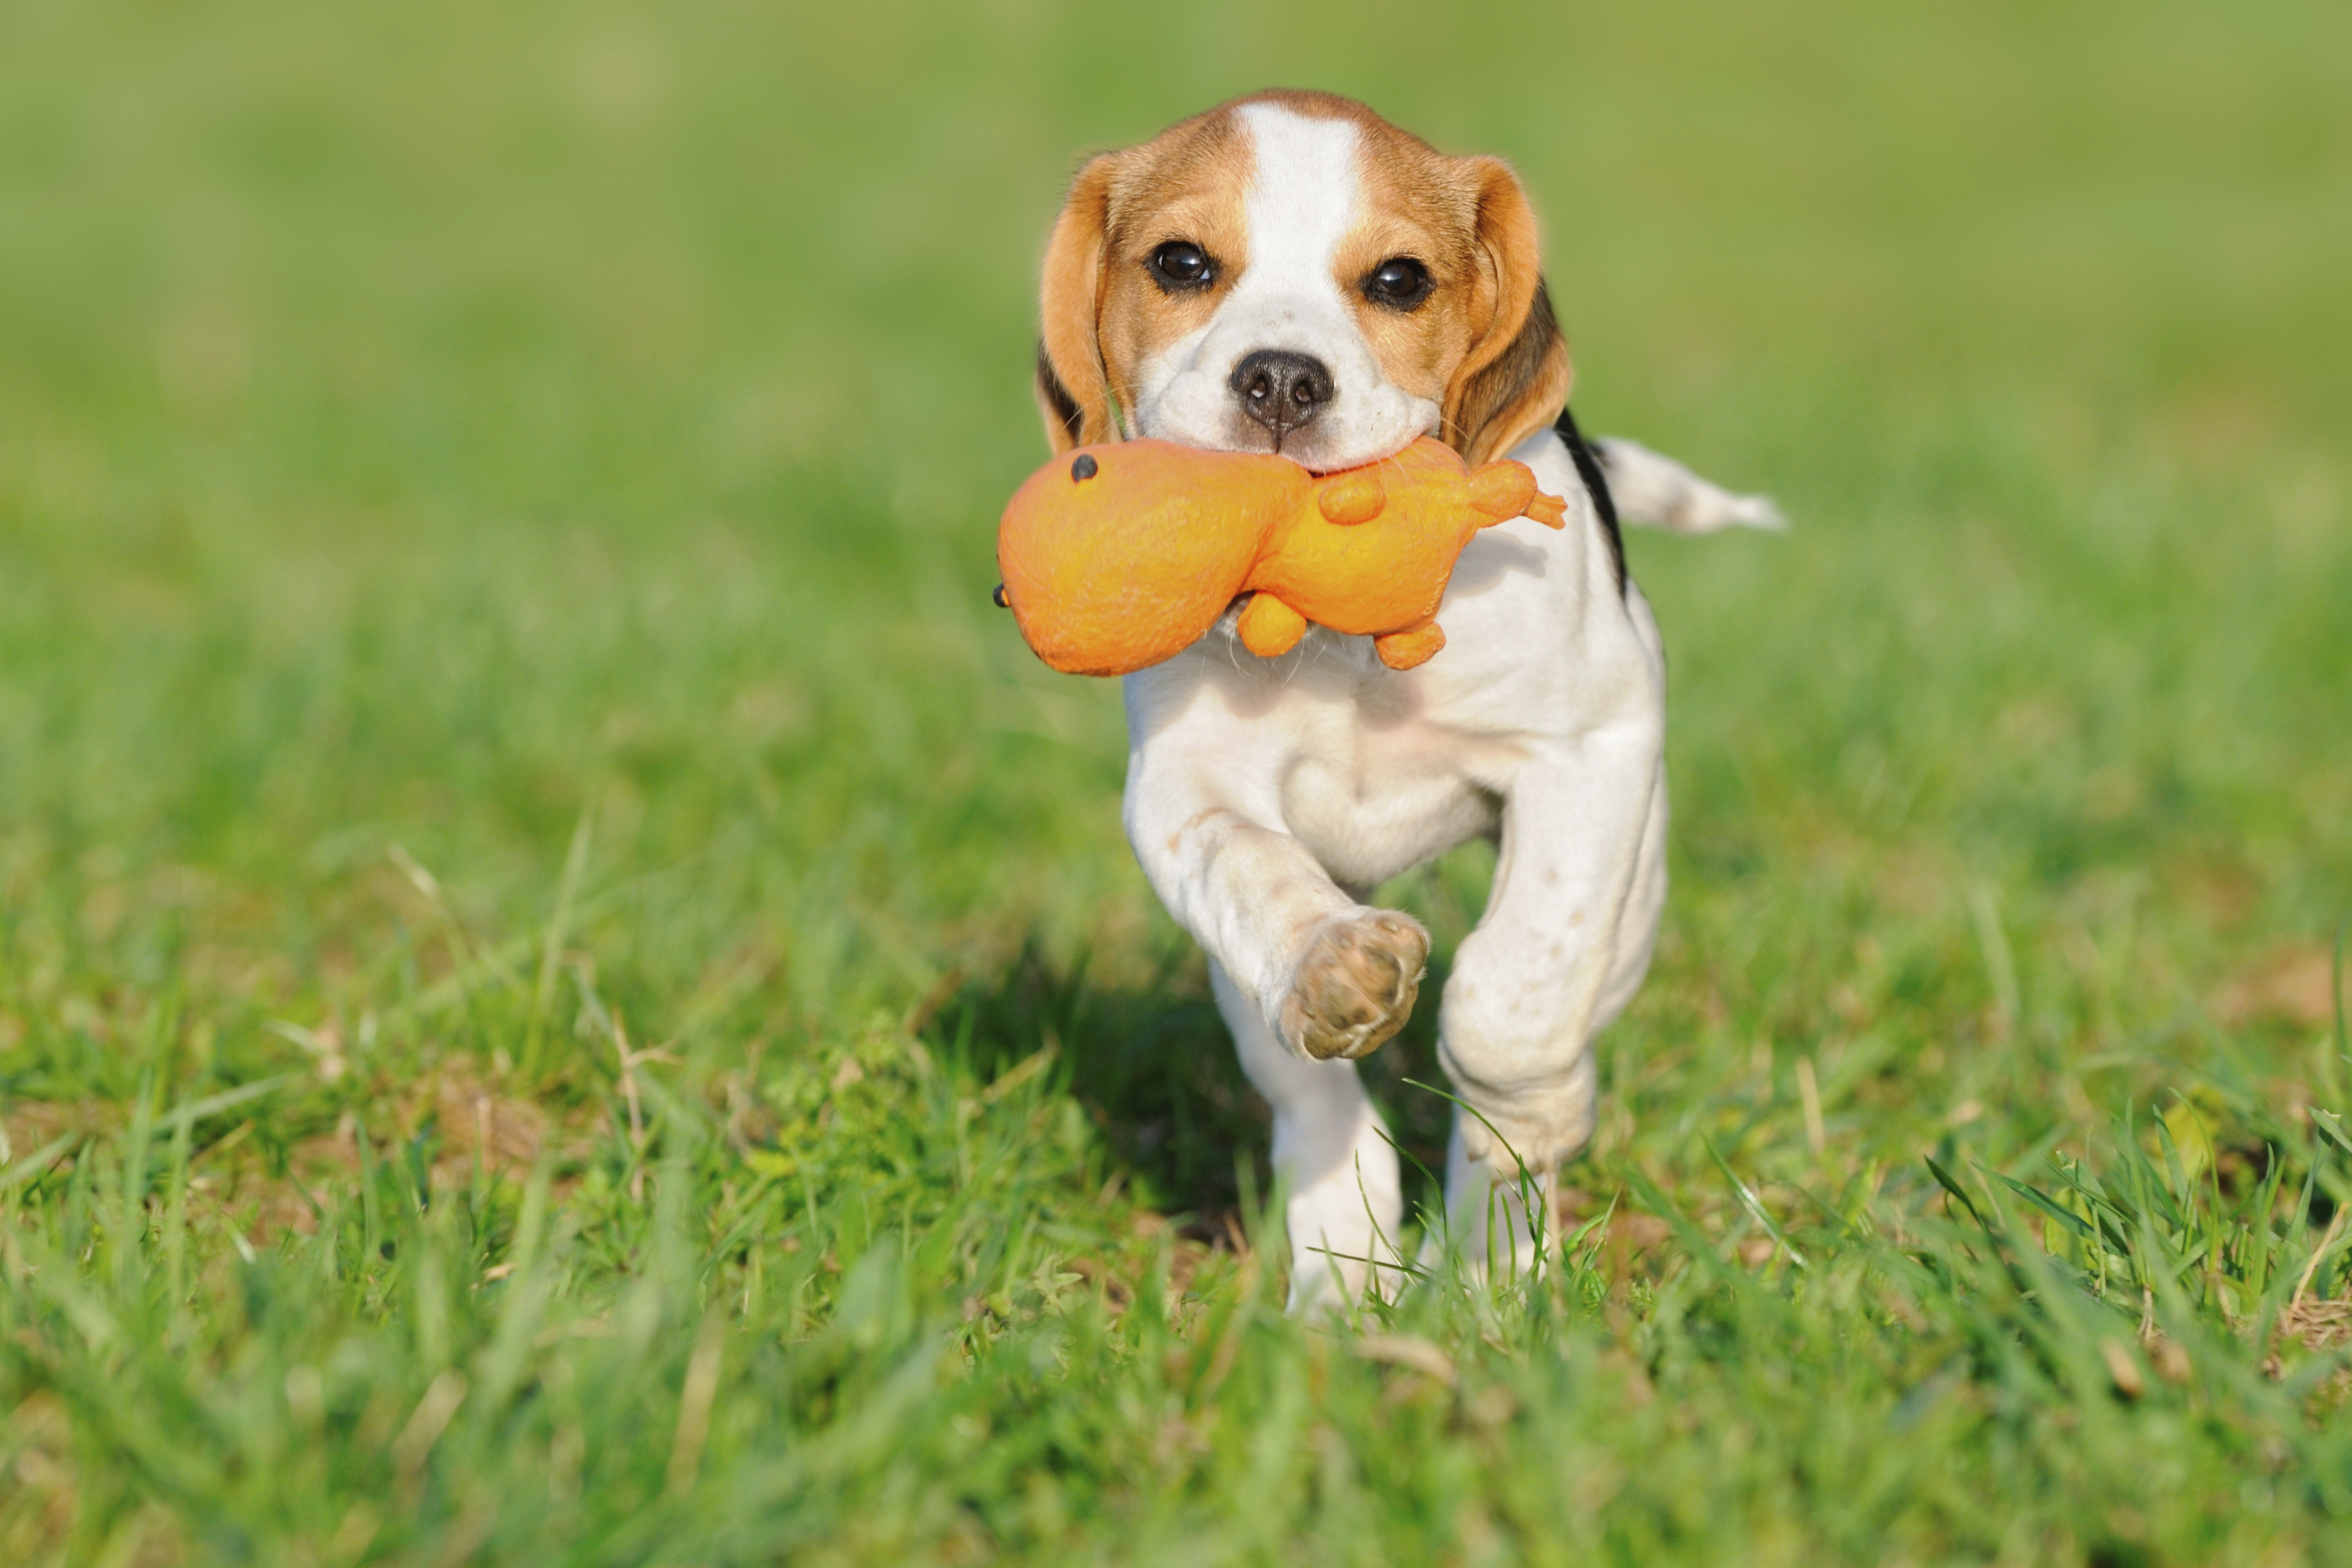 puppy running in a flea free yard with his toy